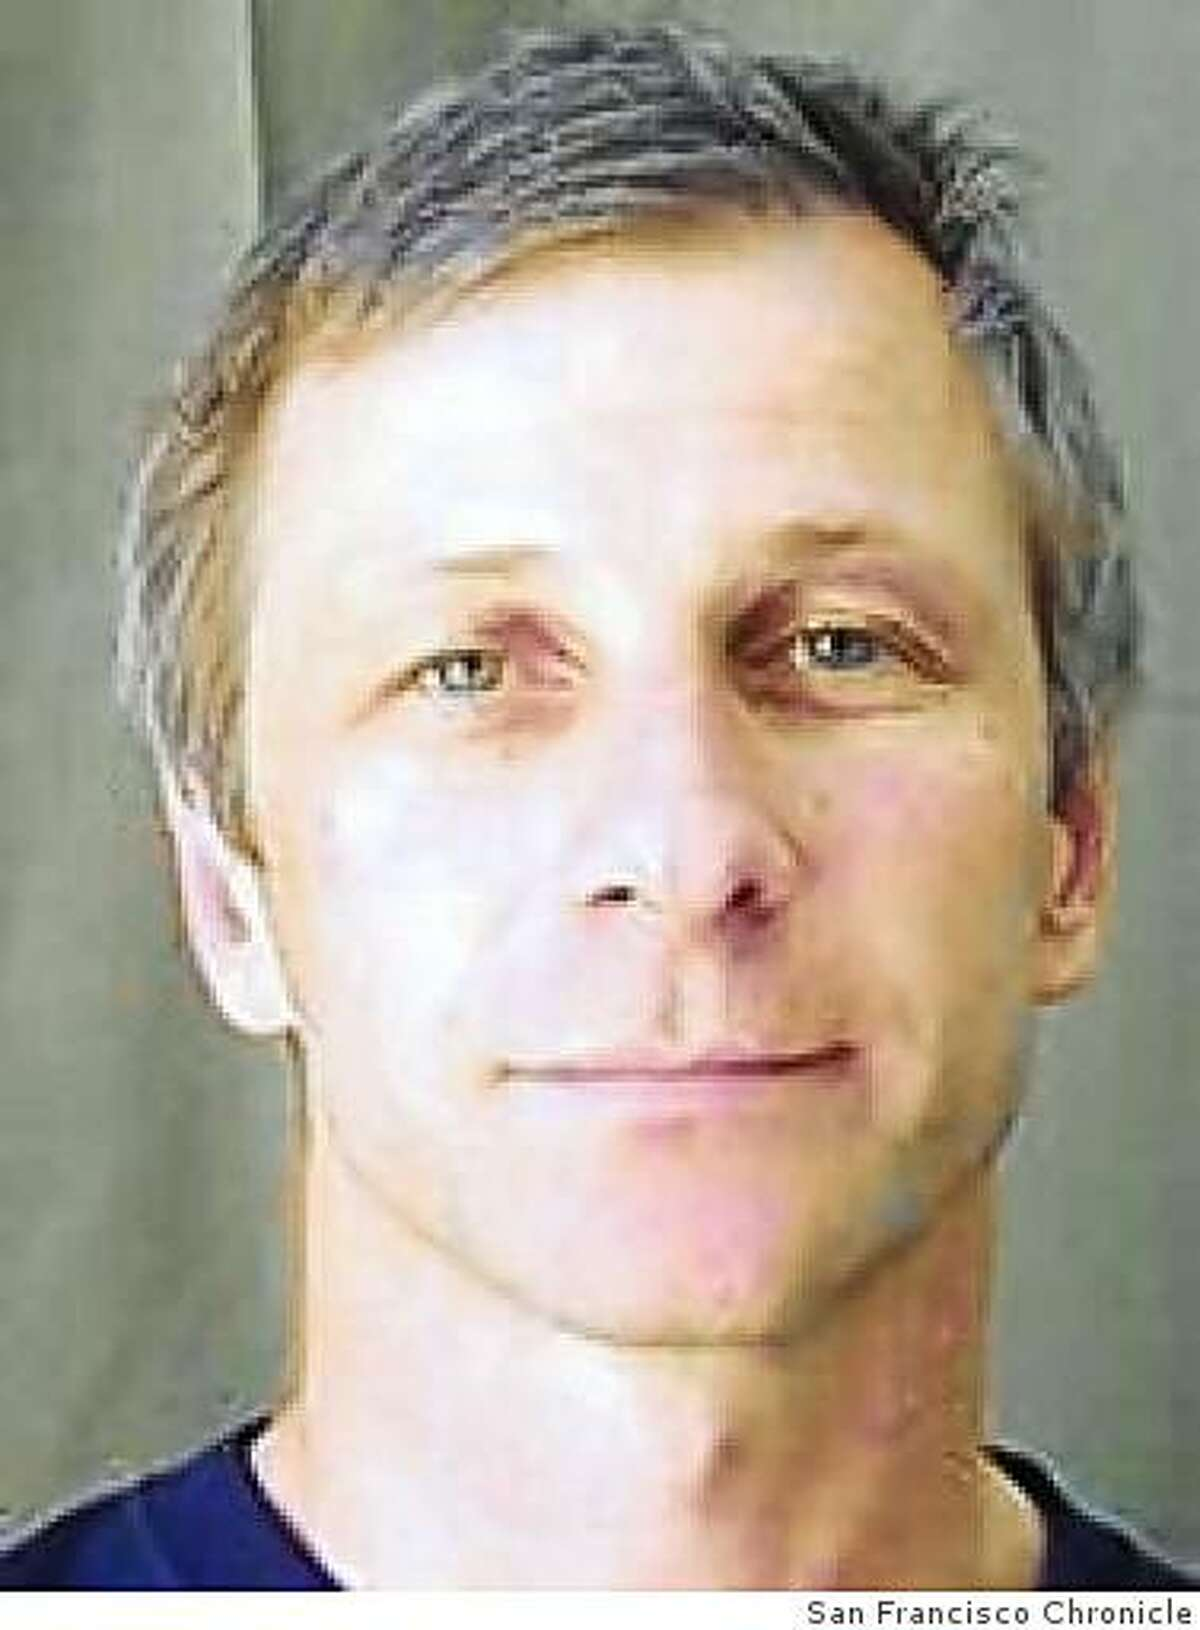 Mark Pendleton, 49, a Chronicle electrician who was killed by a hit-and-run driver while riding his bicycle near Port Costa on Nov. 24, 2008.